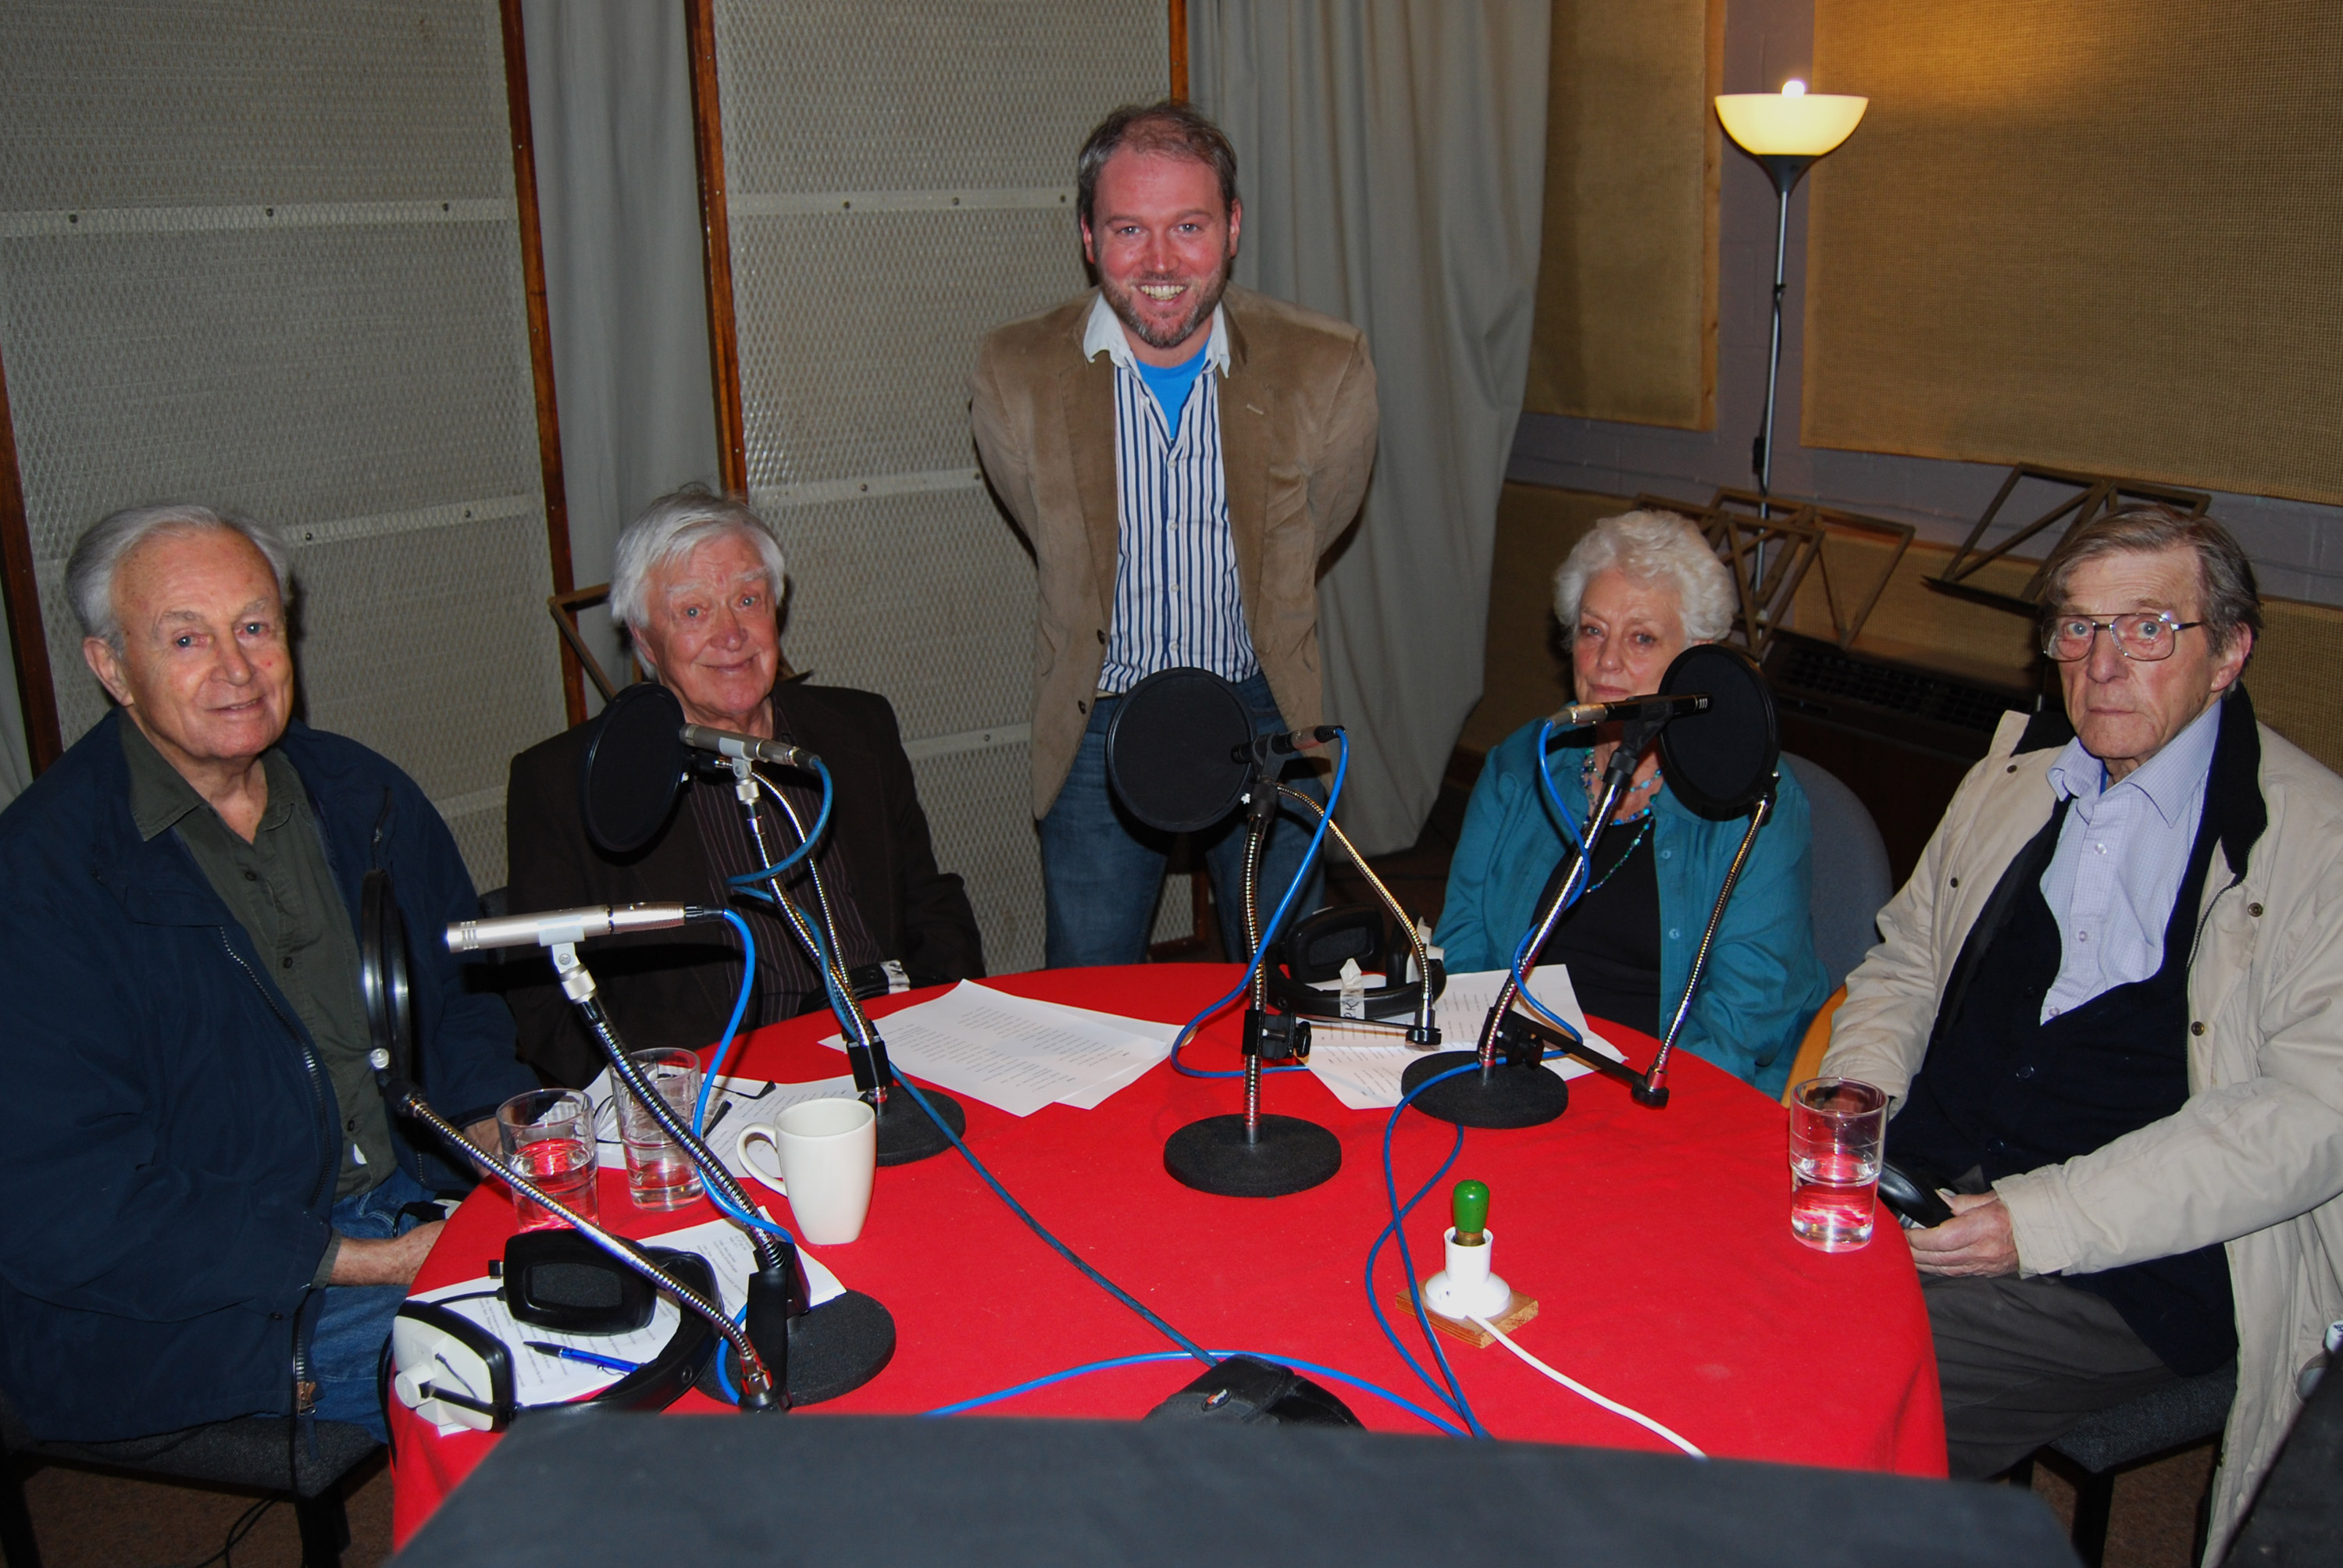 Sonia with William Russell, Joe Greig, Toby Hadoke and Ray Cusick on the DVD commentary recording for The Sensorites. Photo: Simon Harries.